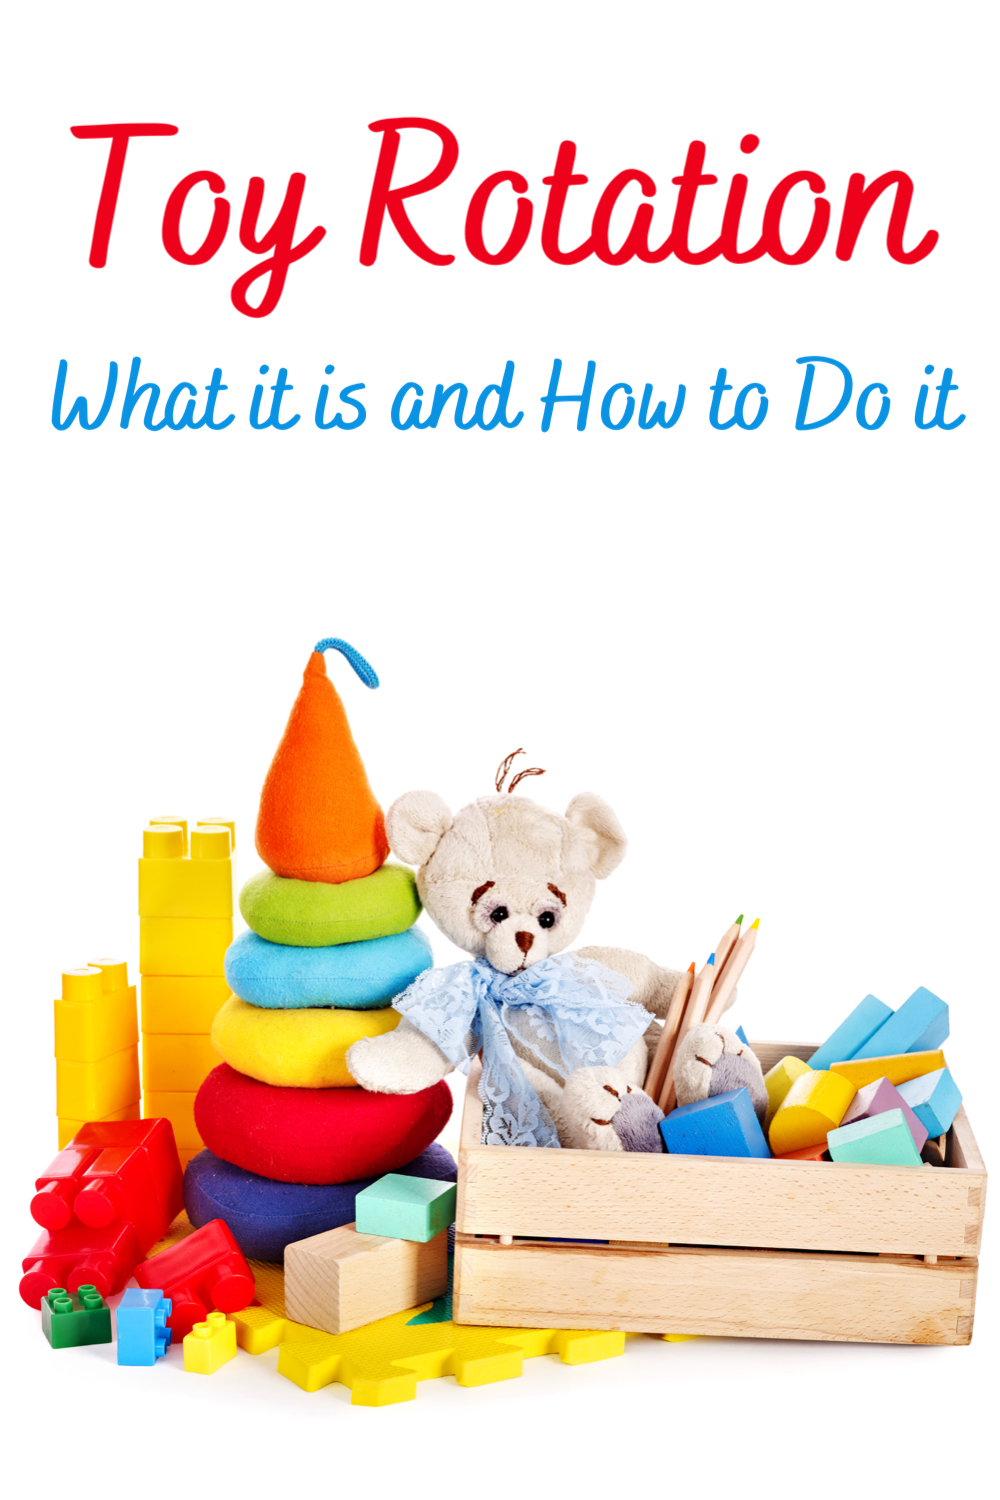 Toy rotation: what it is and how to do it